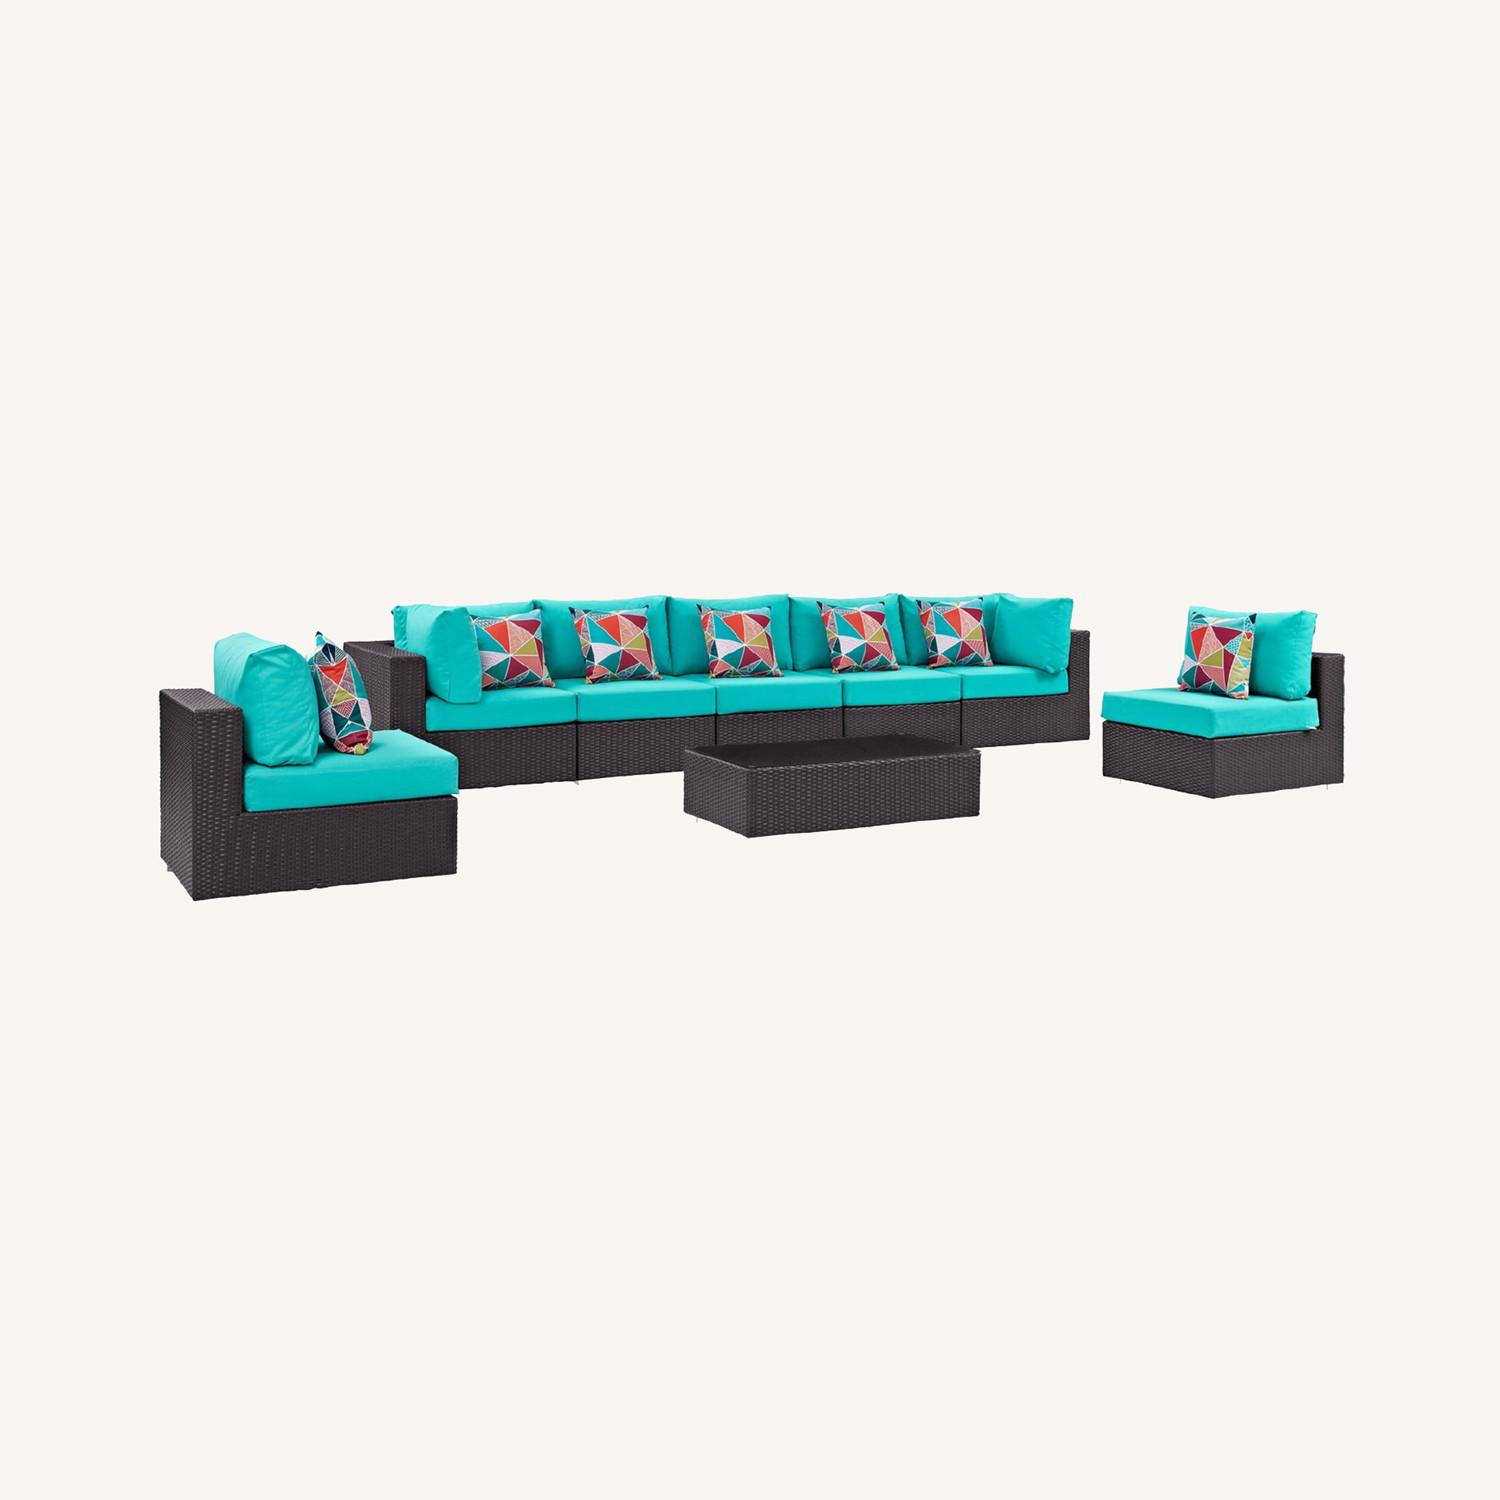 8-Piece Outdoor Sectional In Turquoise Cushion - image-5